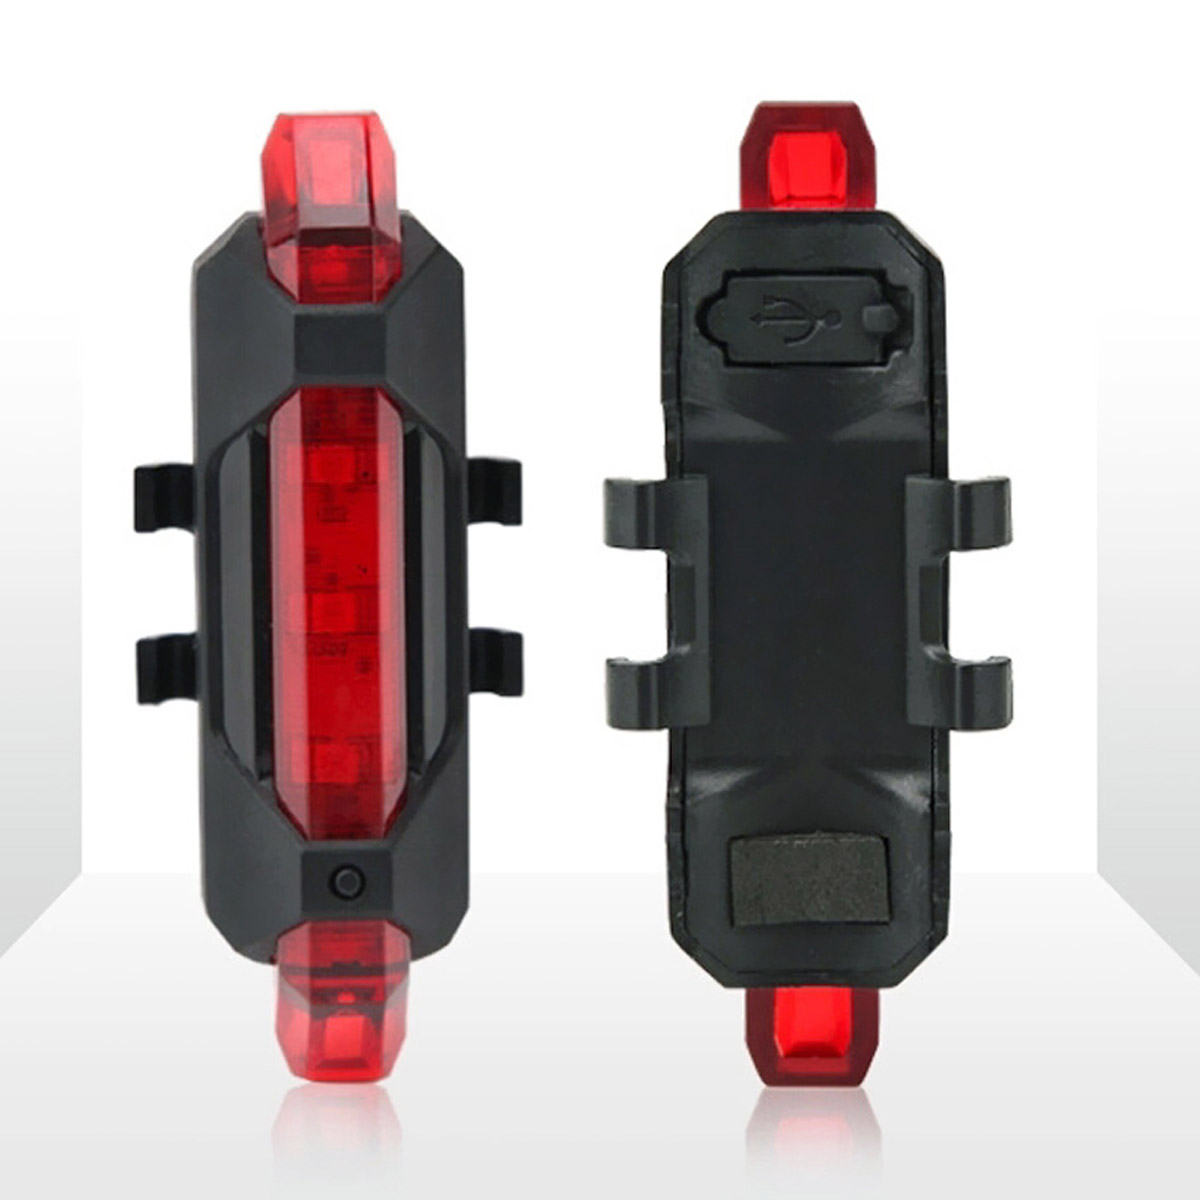 Portable USB Rechargeable Bike Bicycle Tail Rear Safety Warning Light Taillight  Lamp Super Bright HUG-Deals